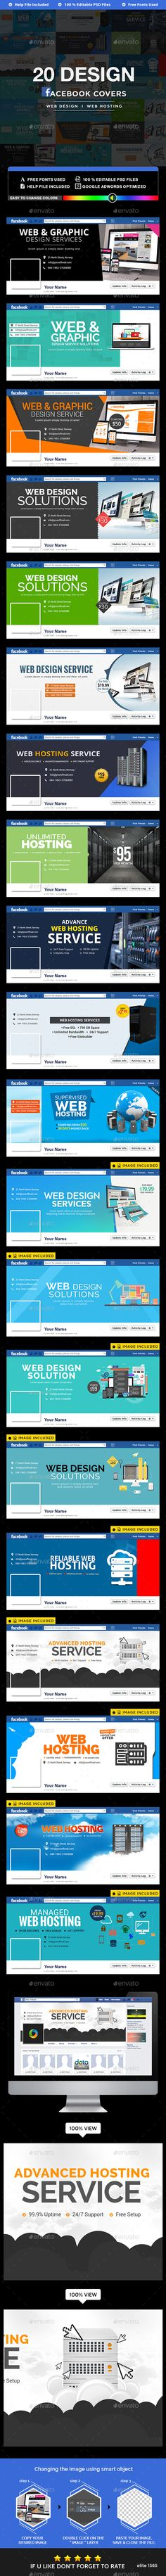 Web Design Hosting Facebook Covers 20 Designs